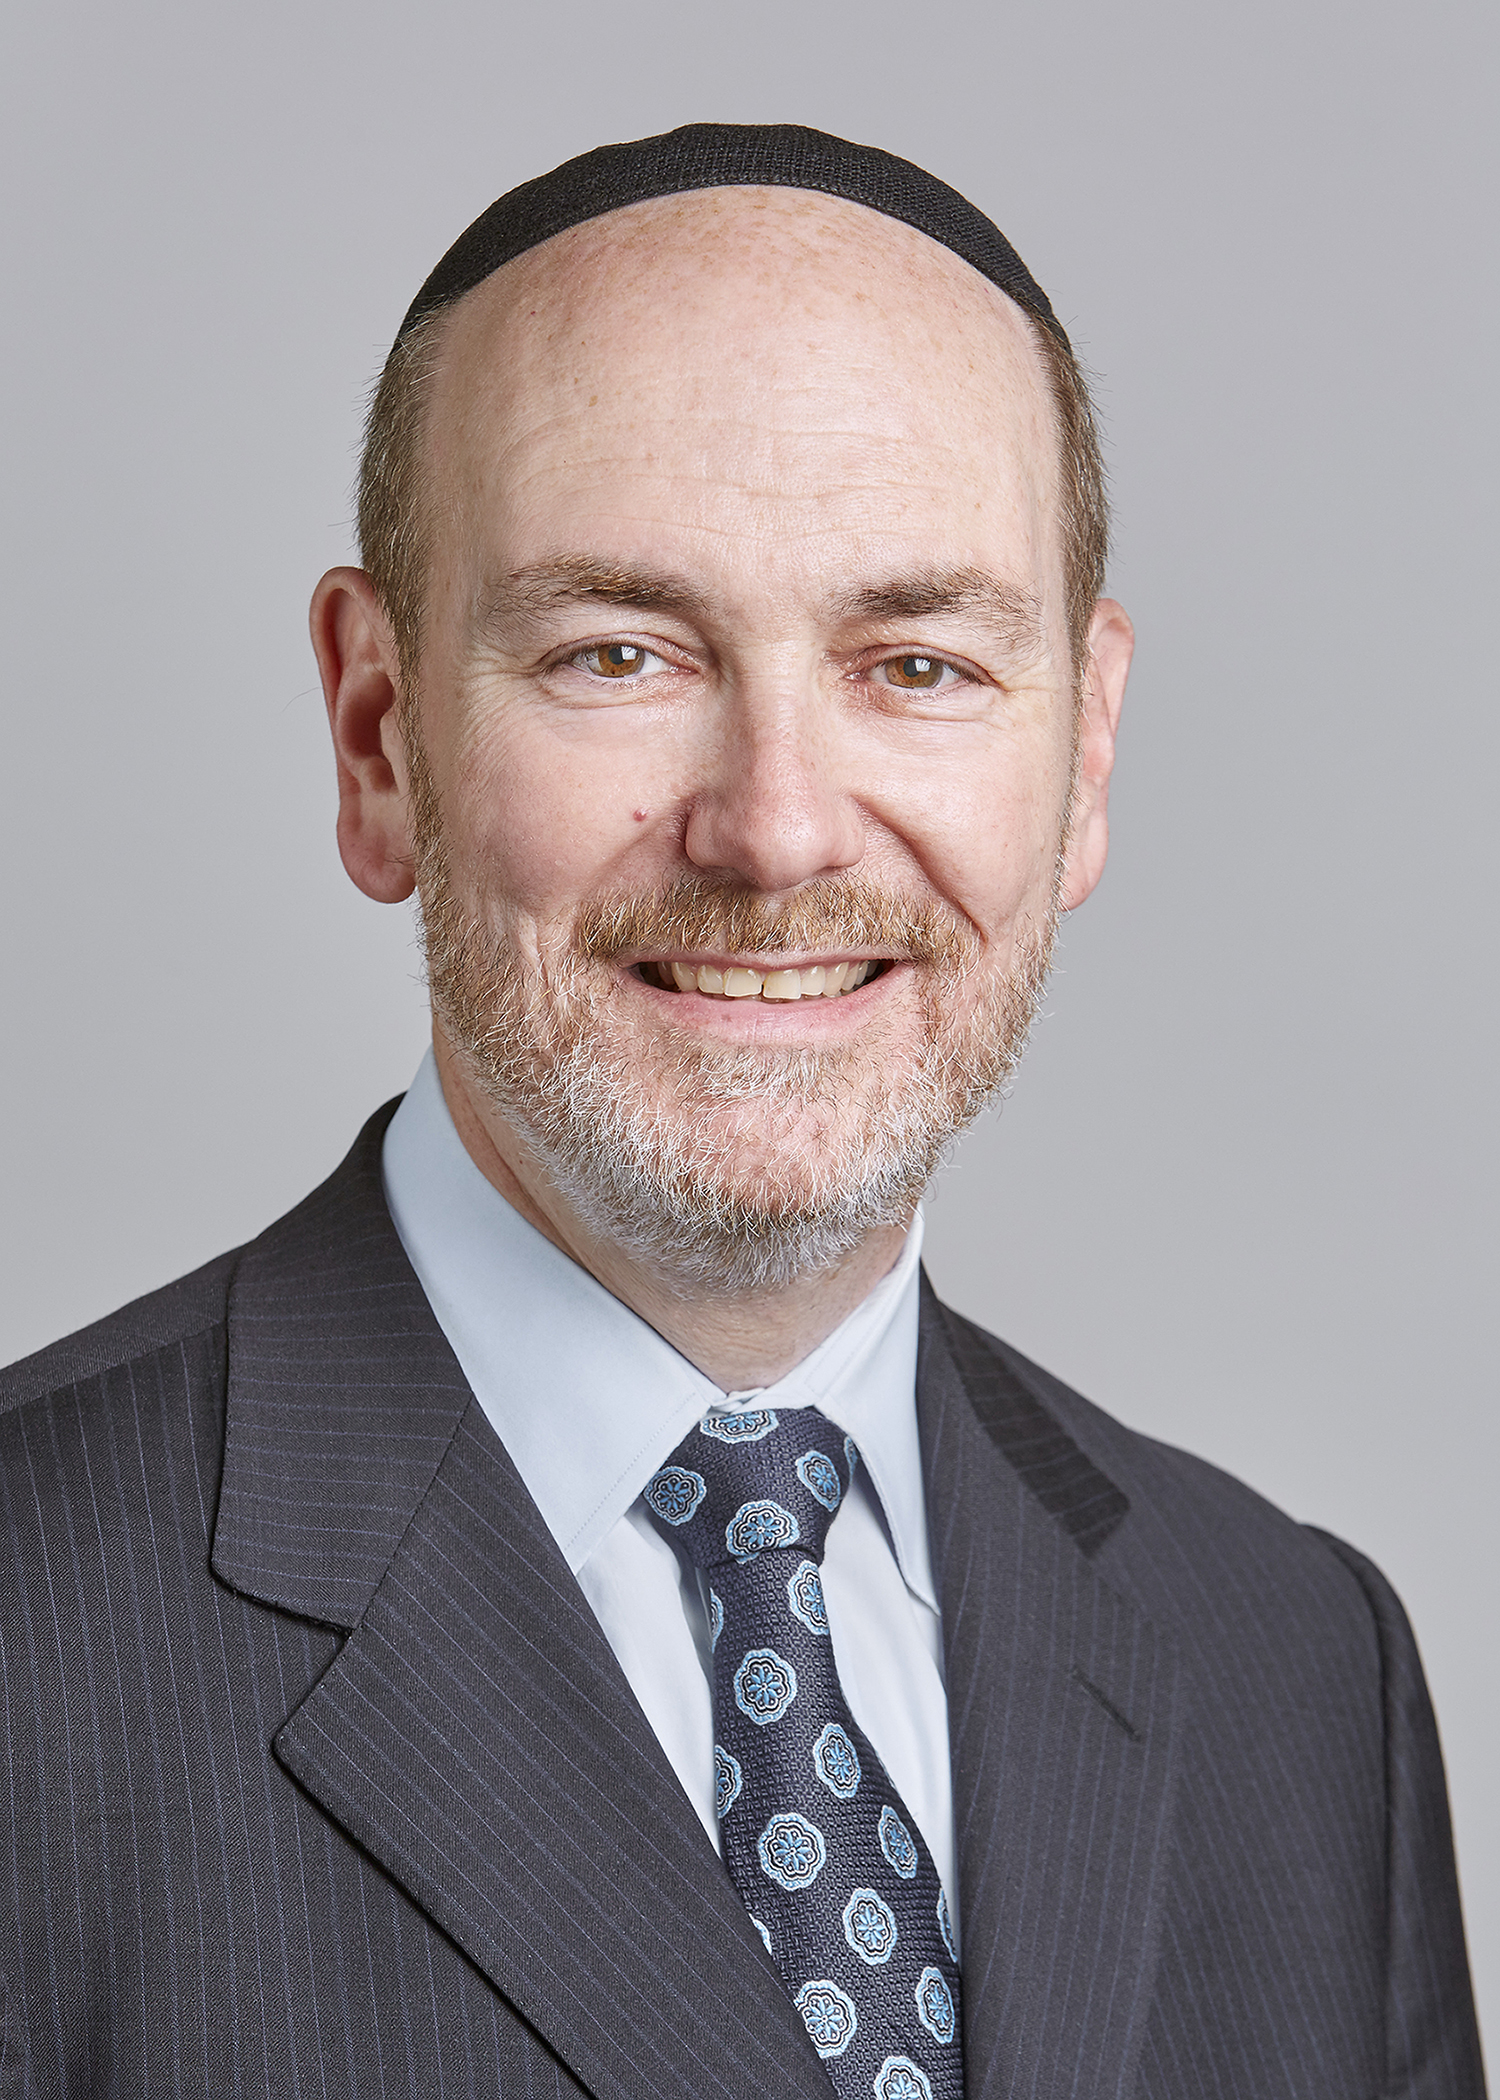 Mitchell Aeder <br> Chairman, Board of Directors